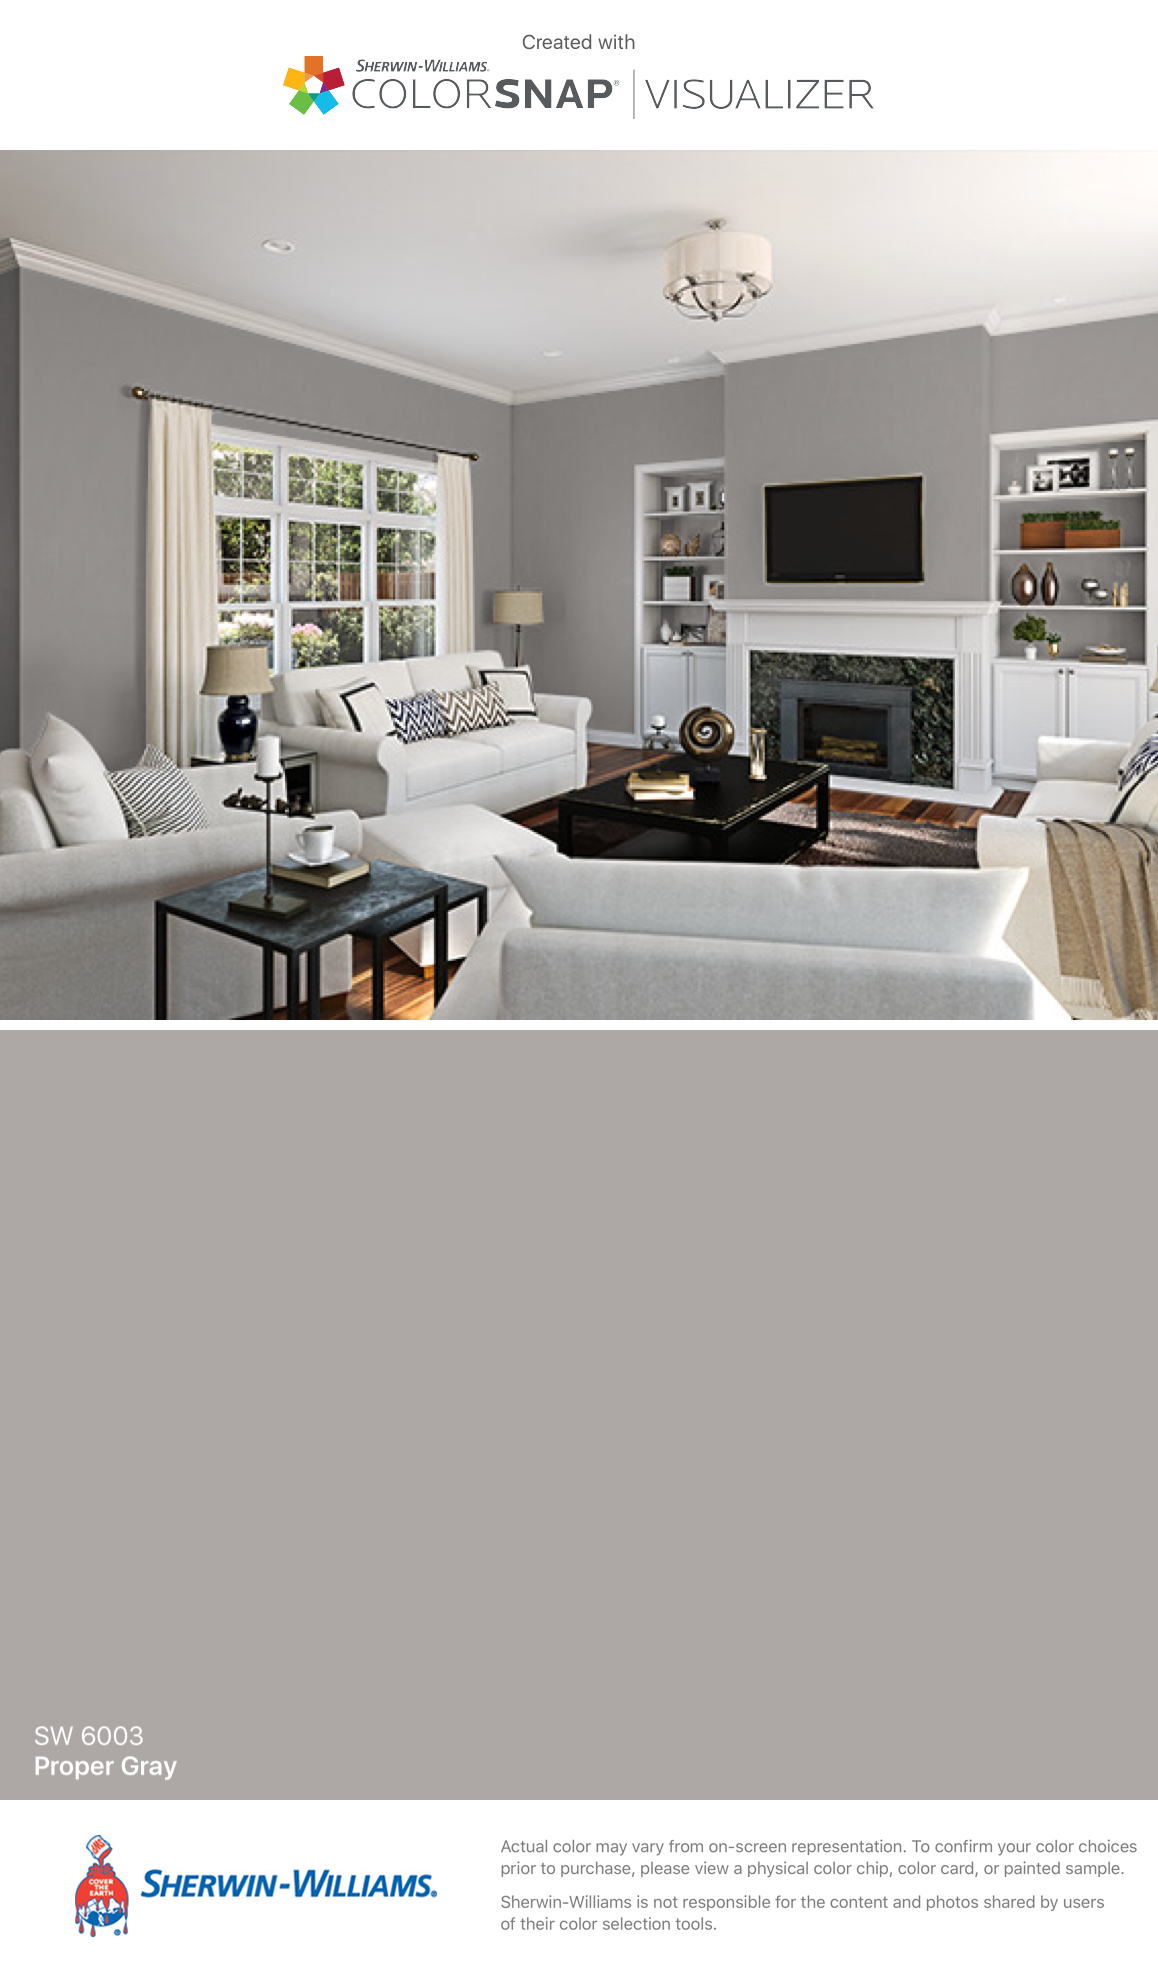 I Found This Color With Colorsnap Visualizer For Iphone By Sherwin Williams Proper Gray Sw 6003